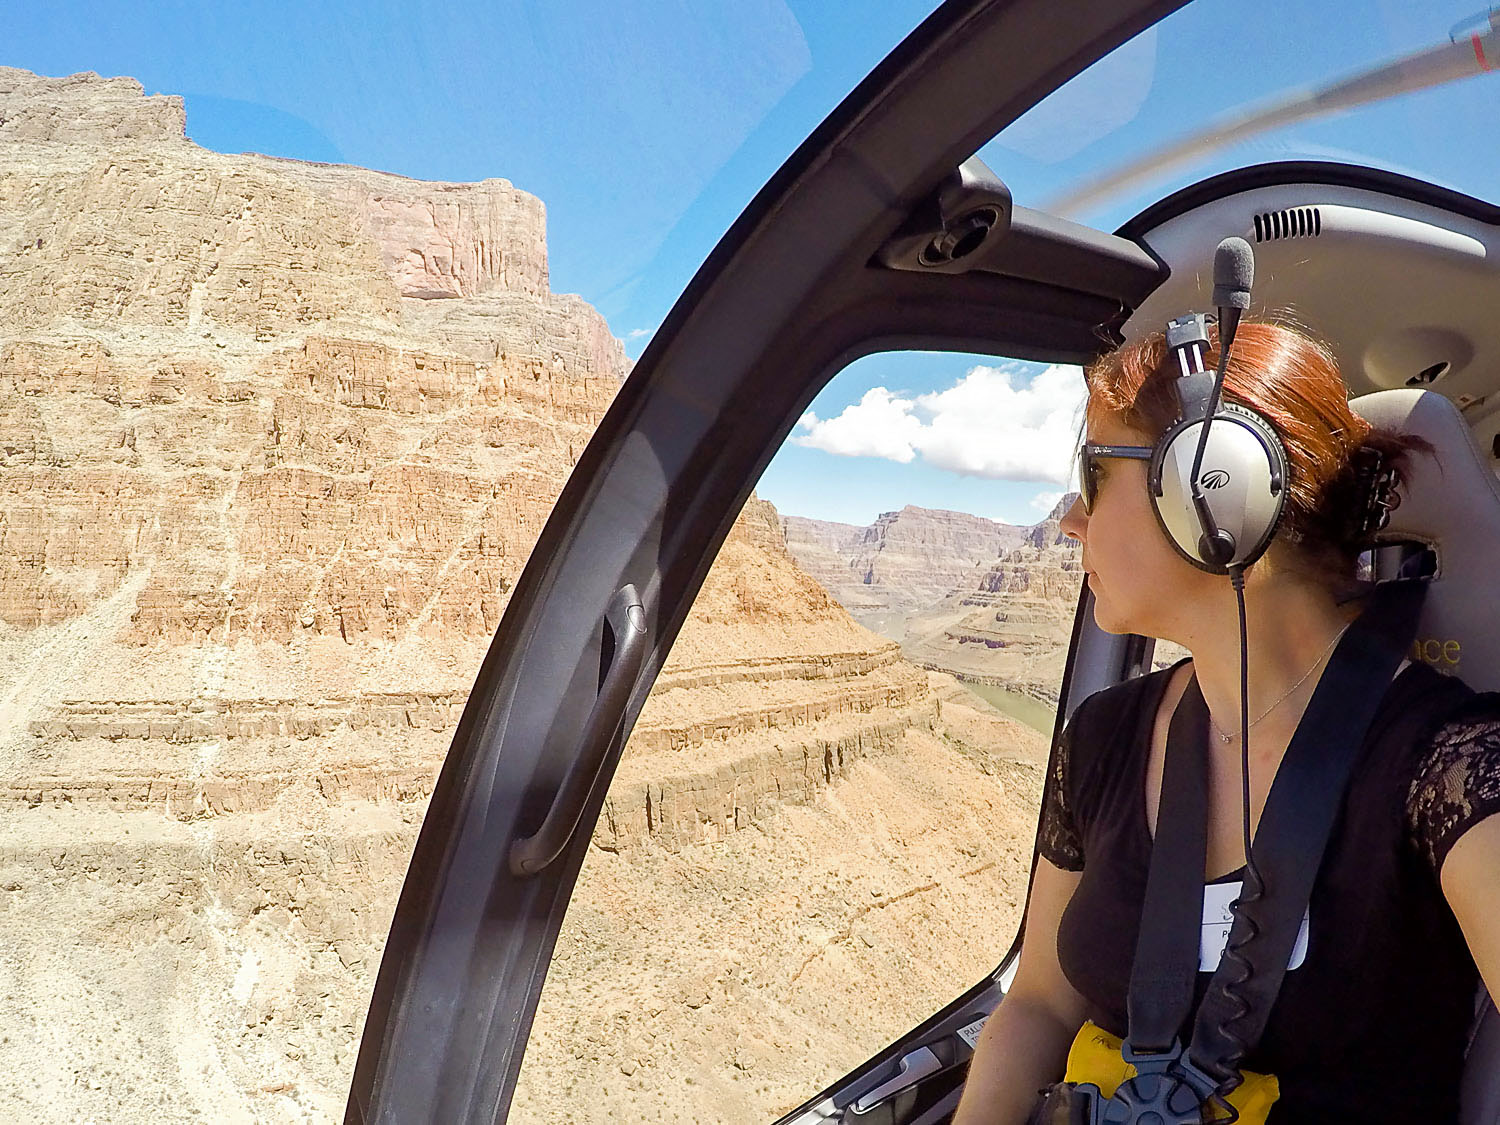 Helicopter ride to the Grand Canyon in Arizona